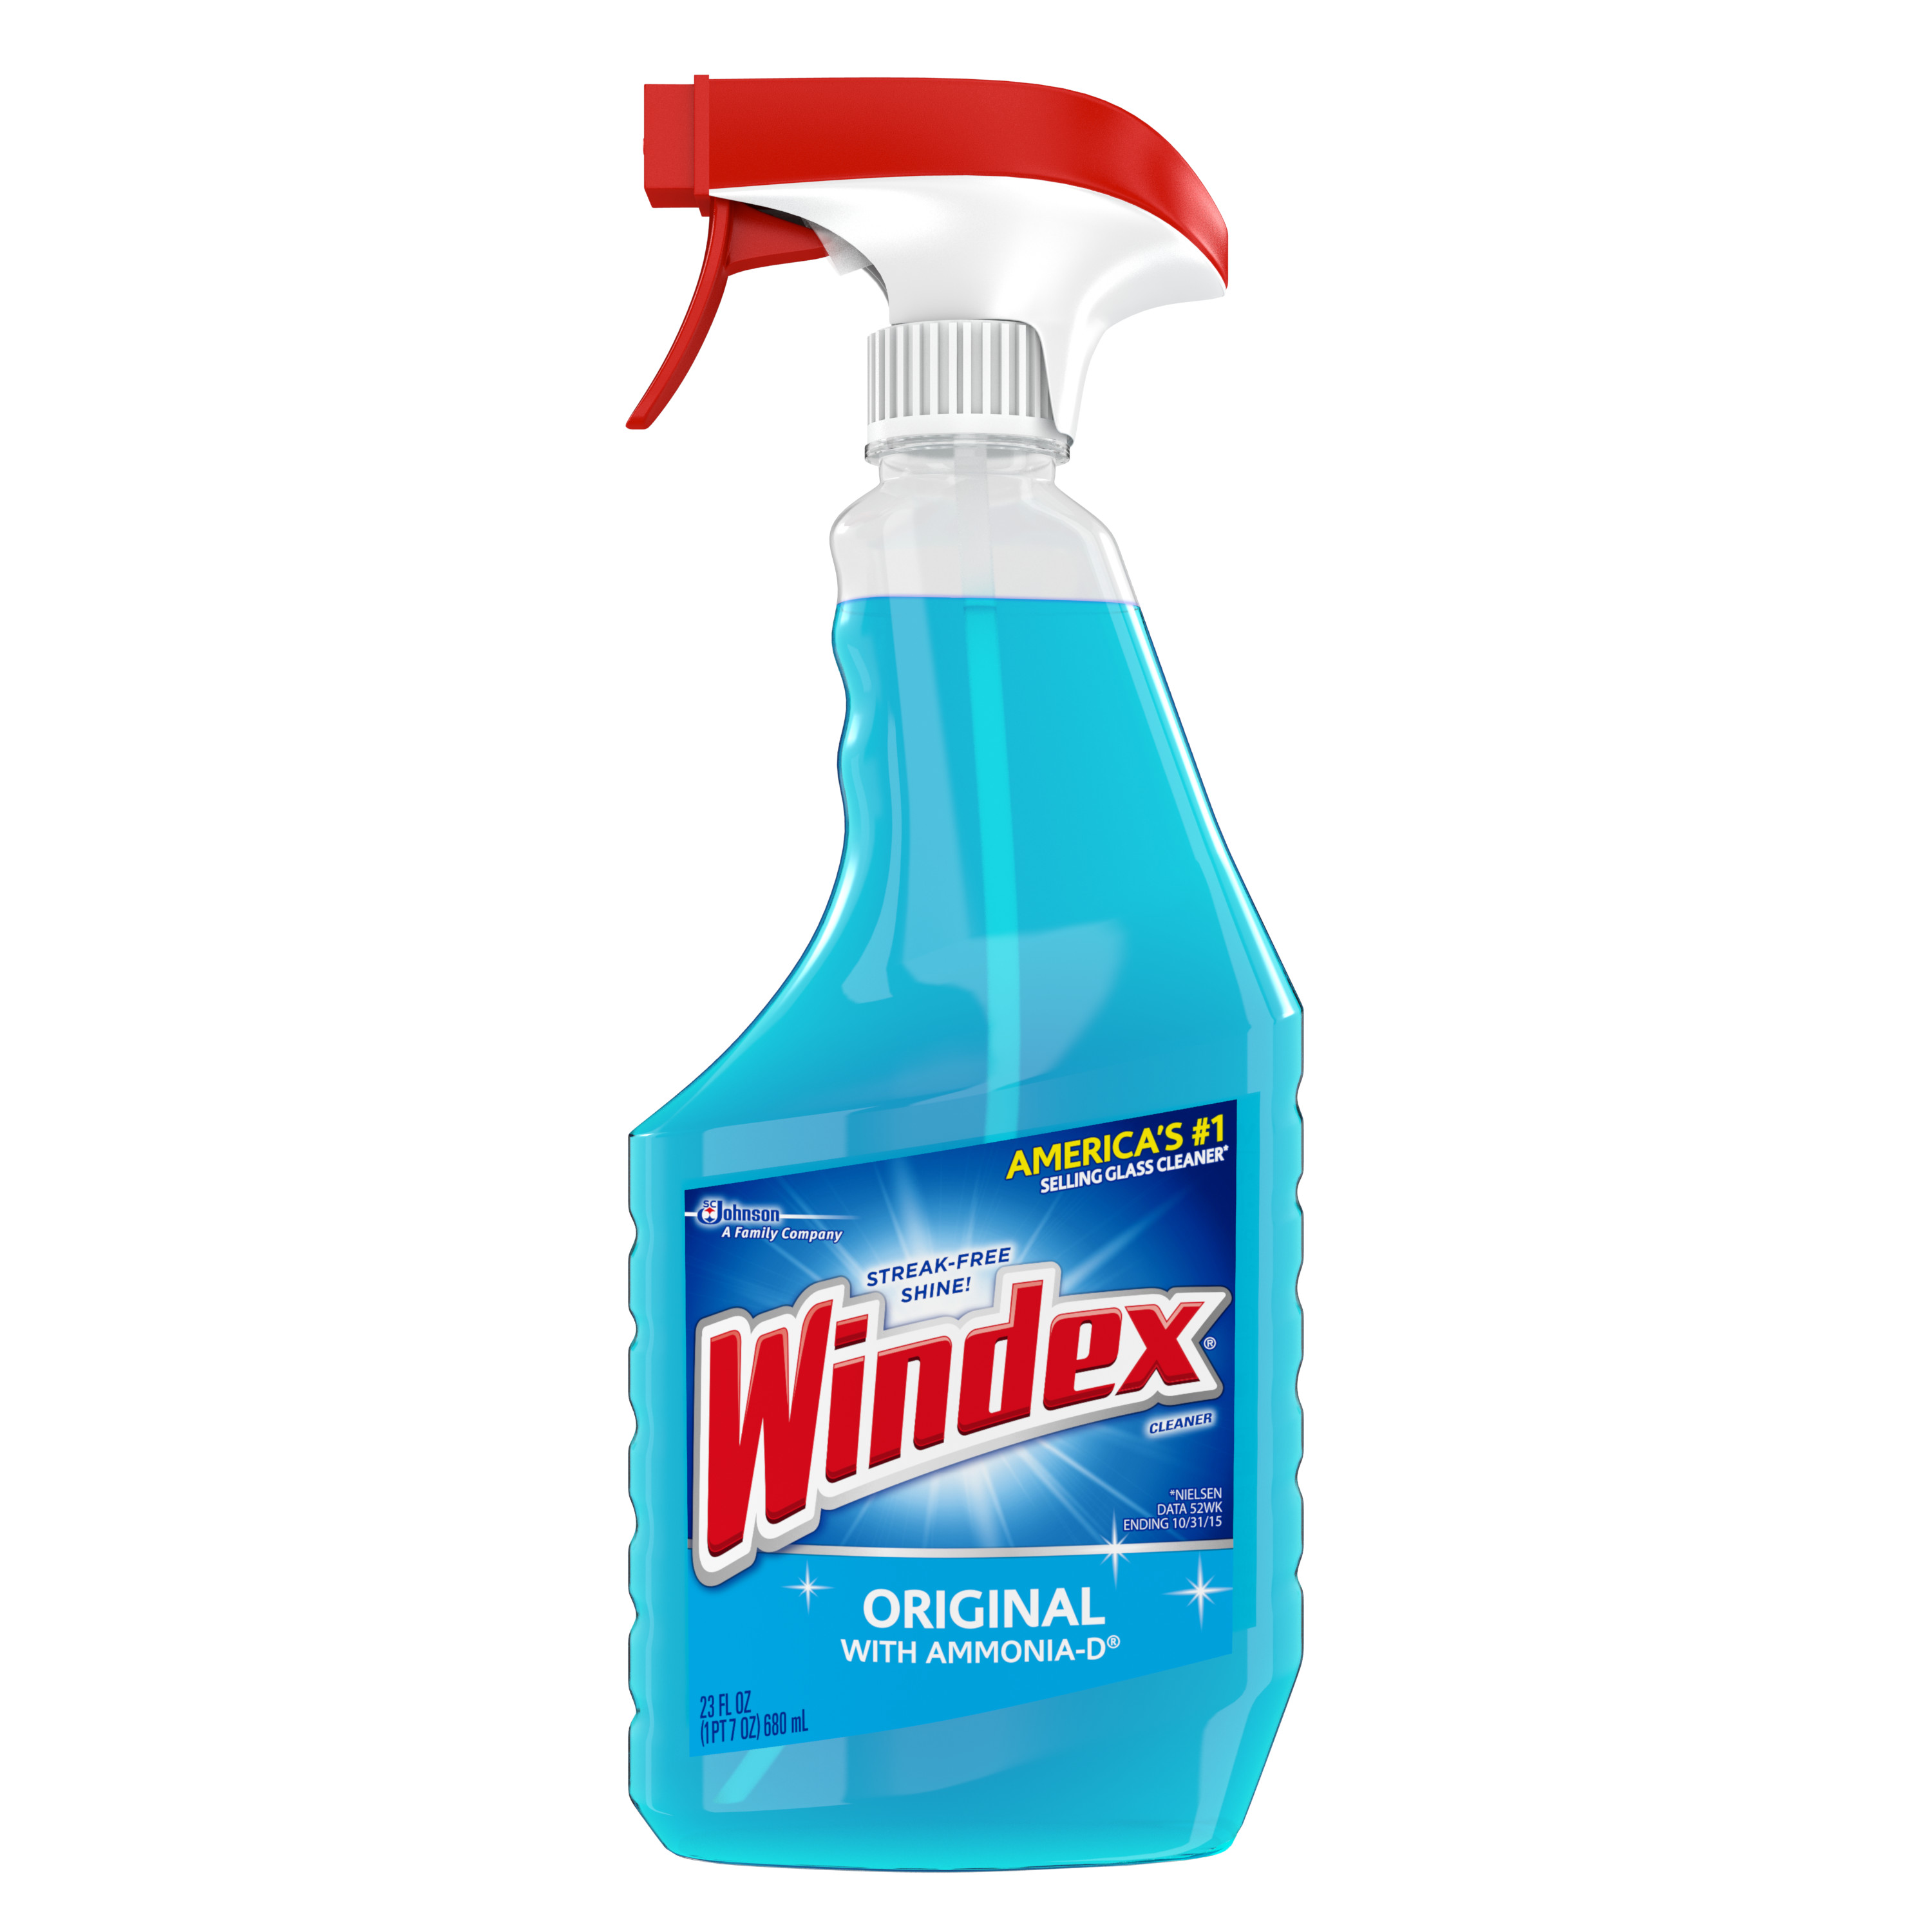 Windex Original Glass Cleaner, 23.0 Fluid Ounce